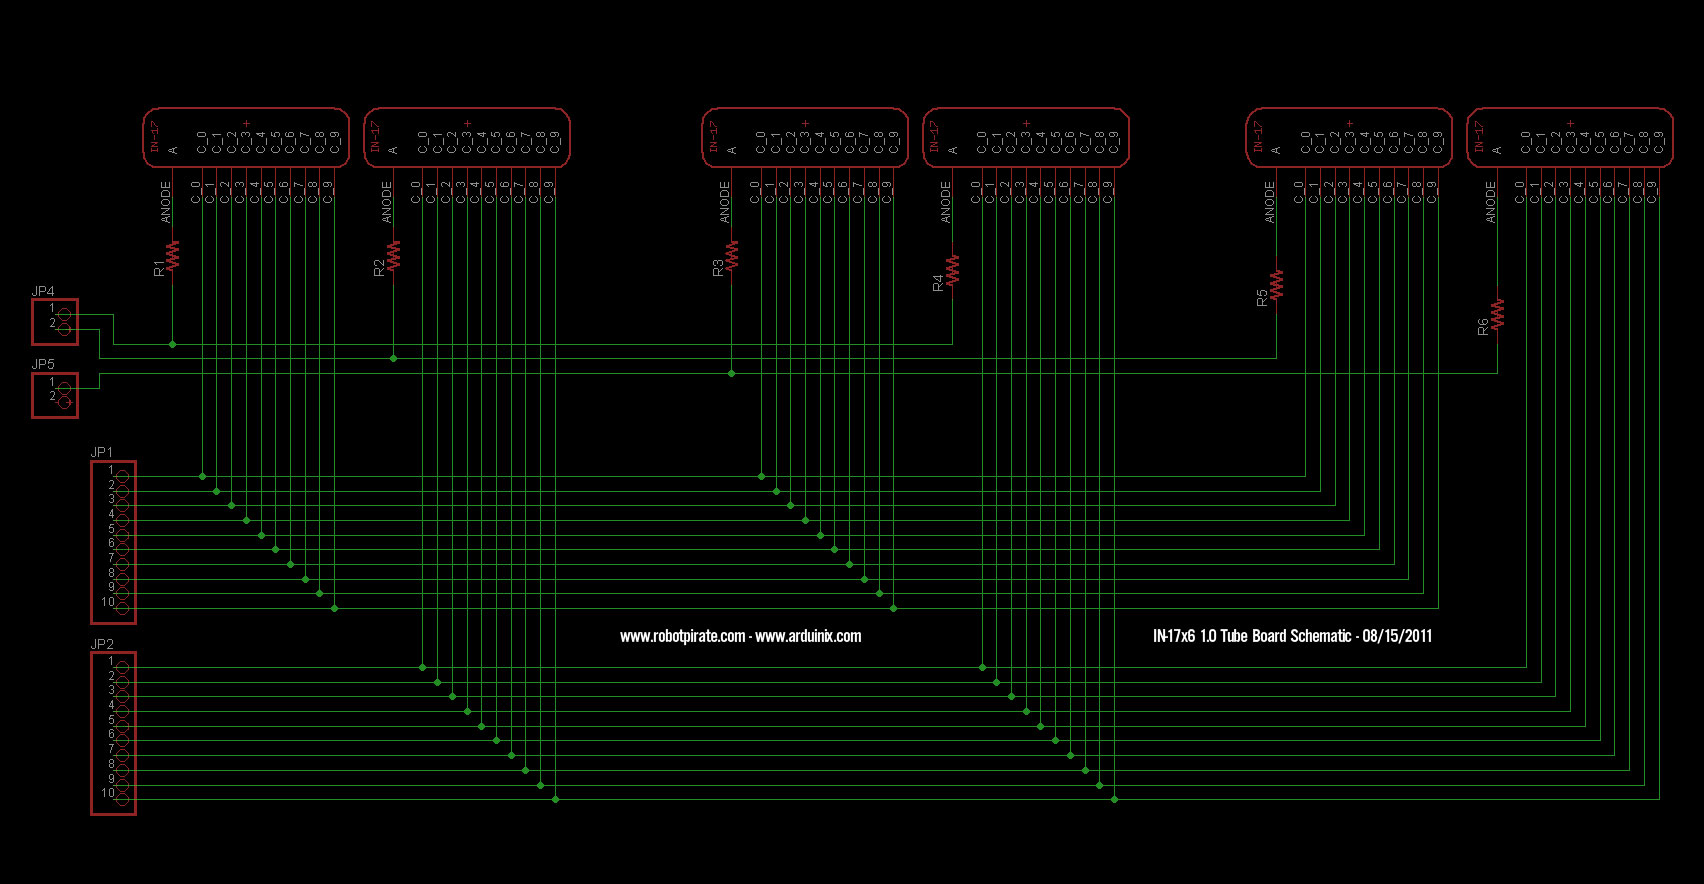 Arduinix Nixie Tube Schematic Page 1 Winner Will Be Chosen Solely By Me Your Friendly Neighborhood Robotpirate Whats That You Say Need The Pinout For This Board To Write Code